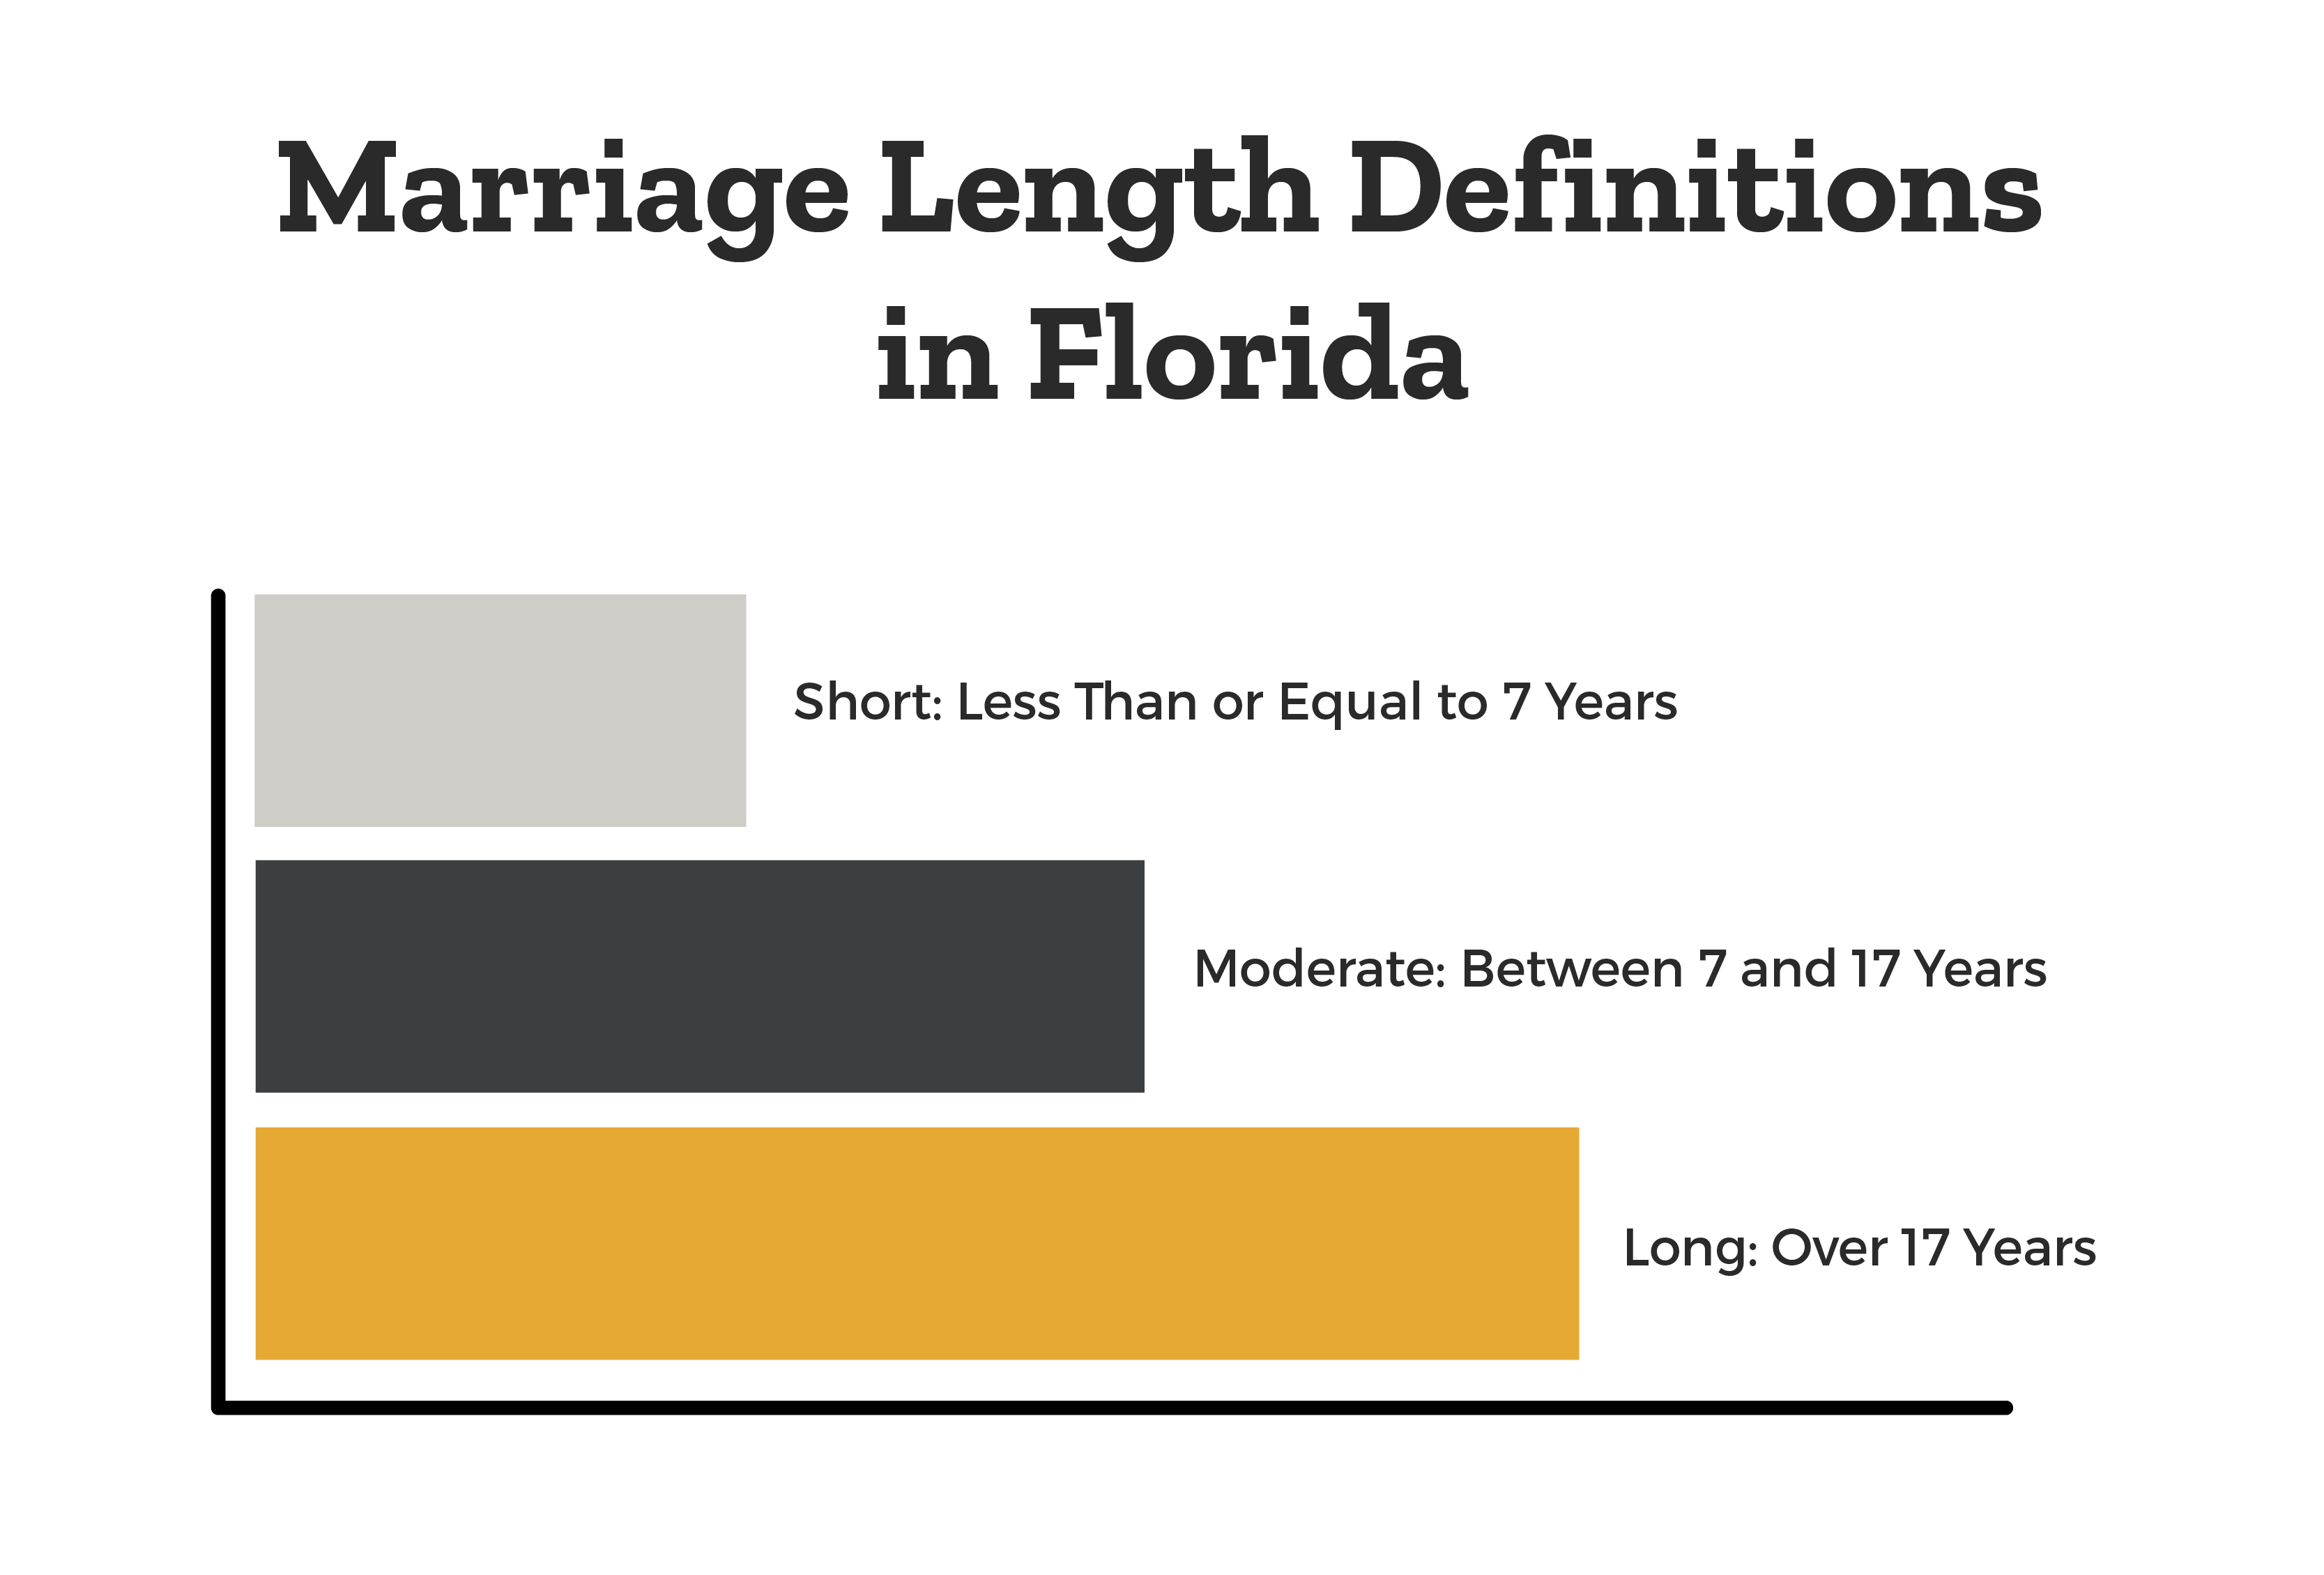 Marriage Length Definitions in Florida